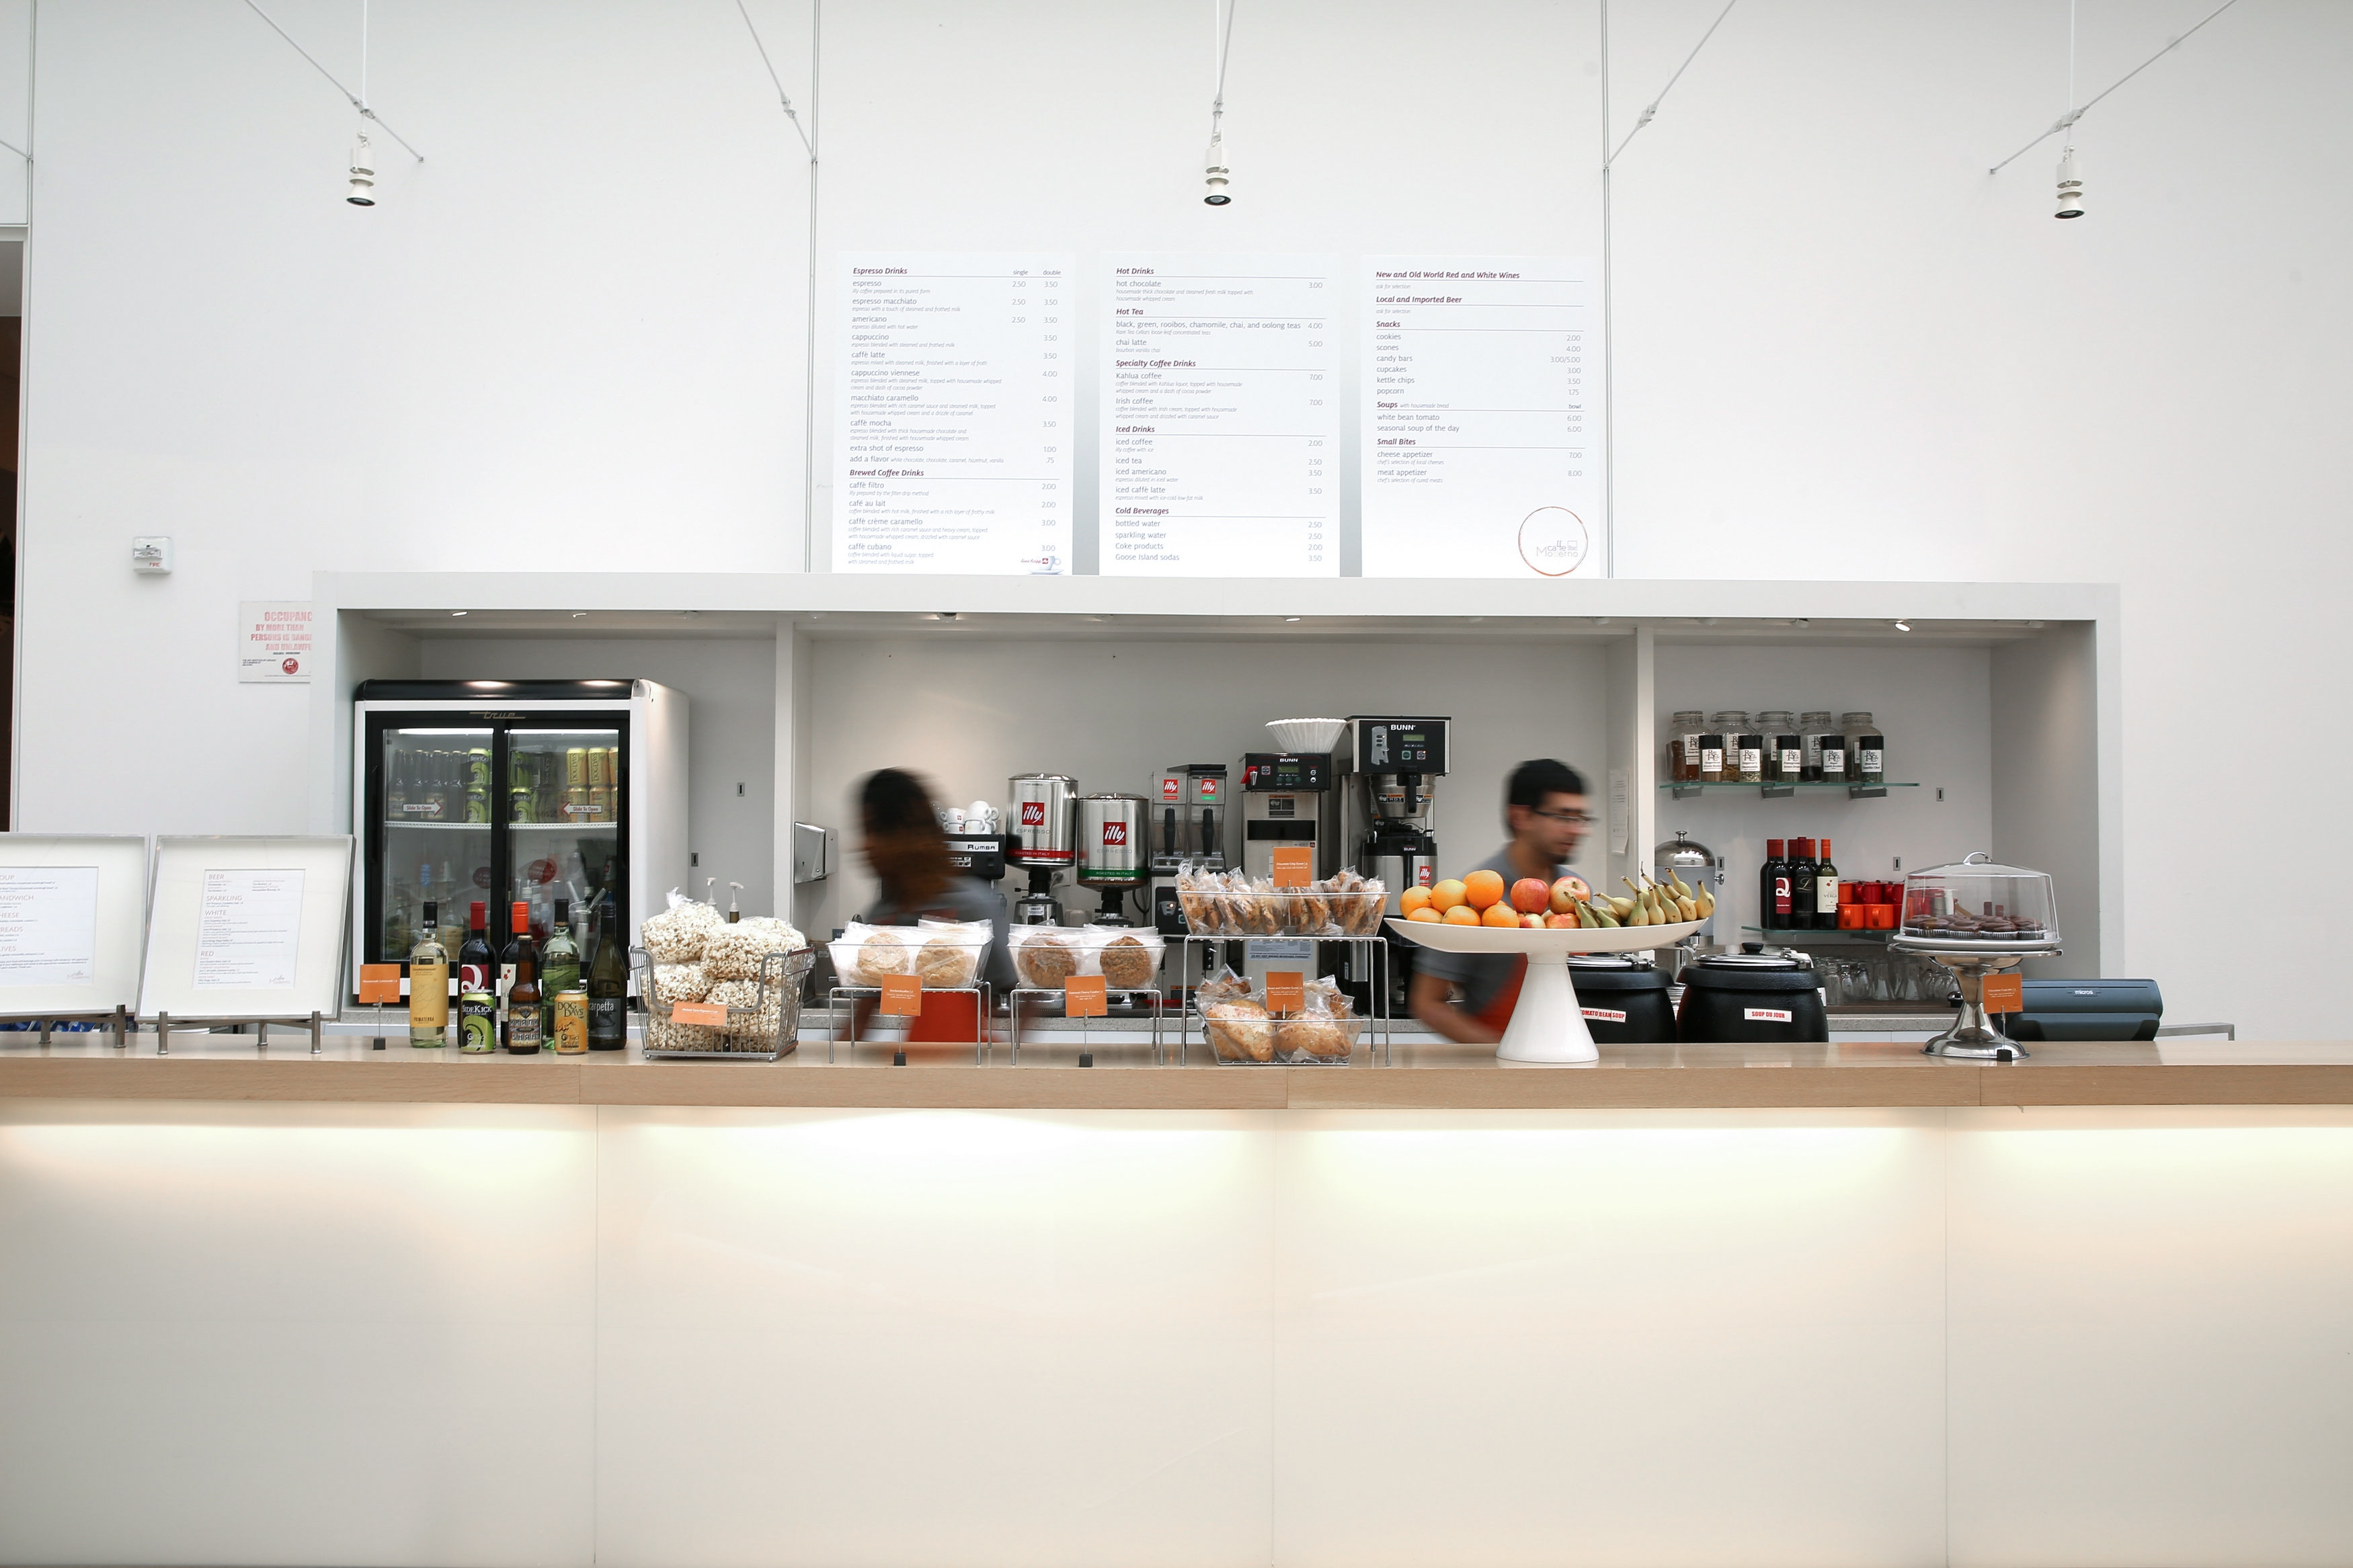 The counter and menu for Caffe Moderno